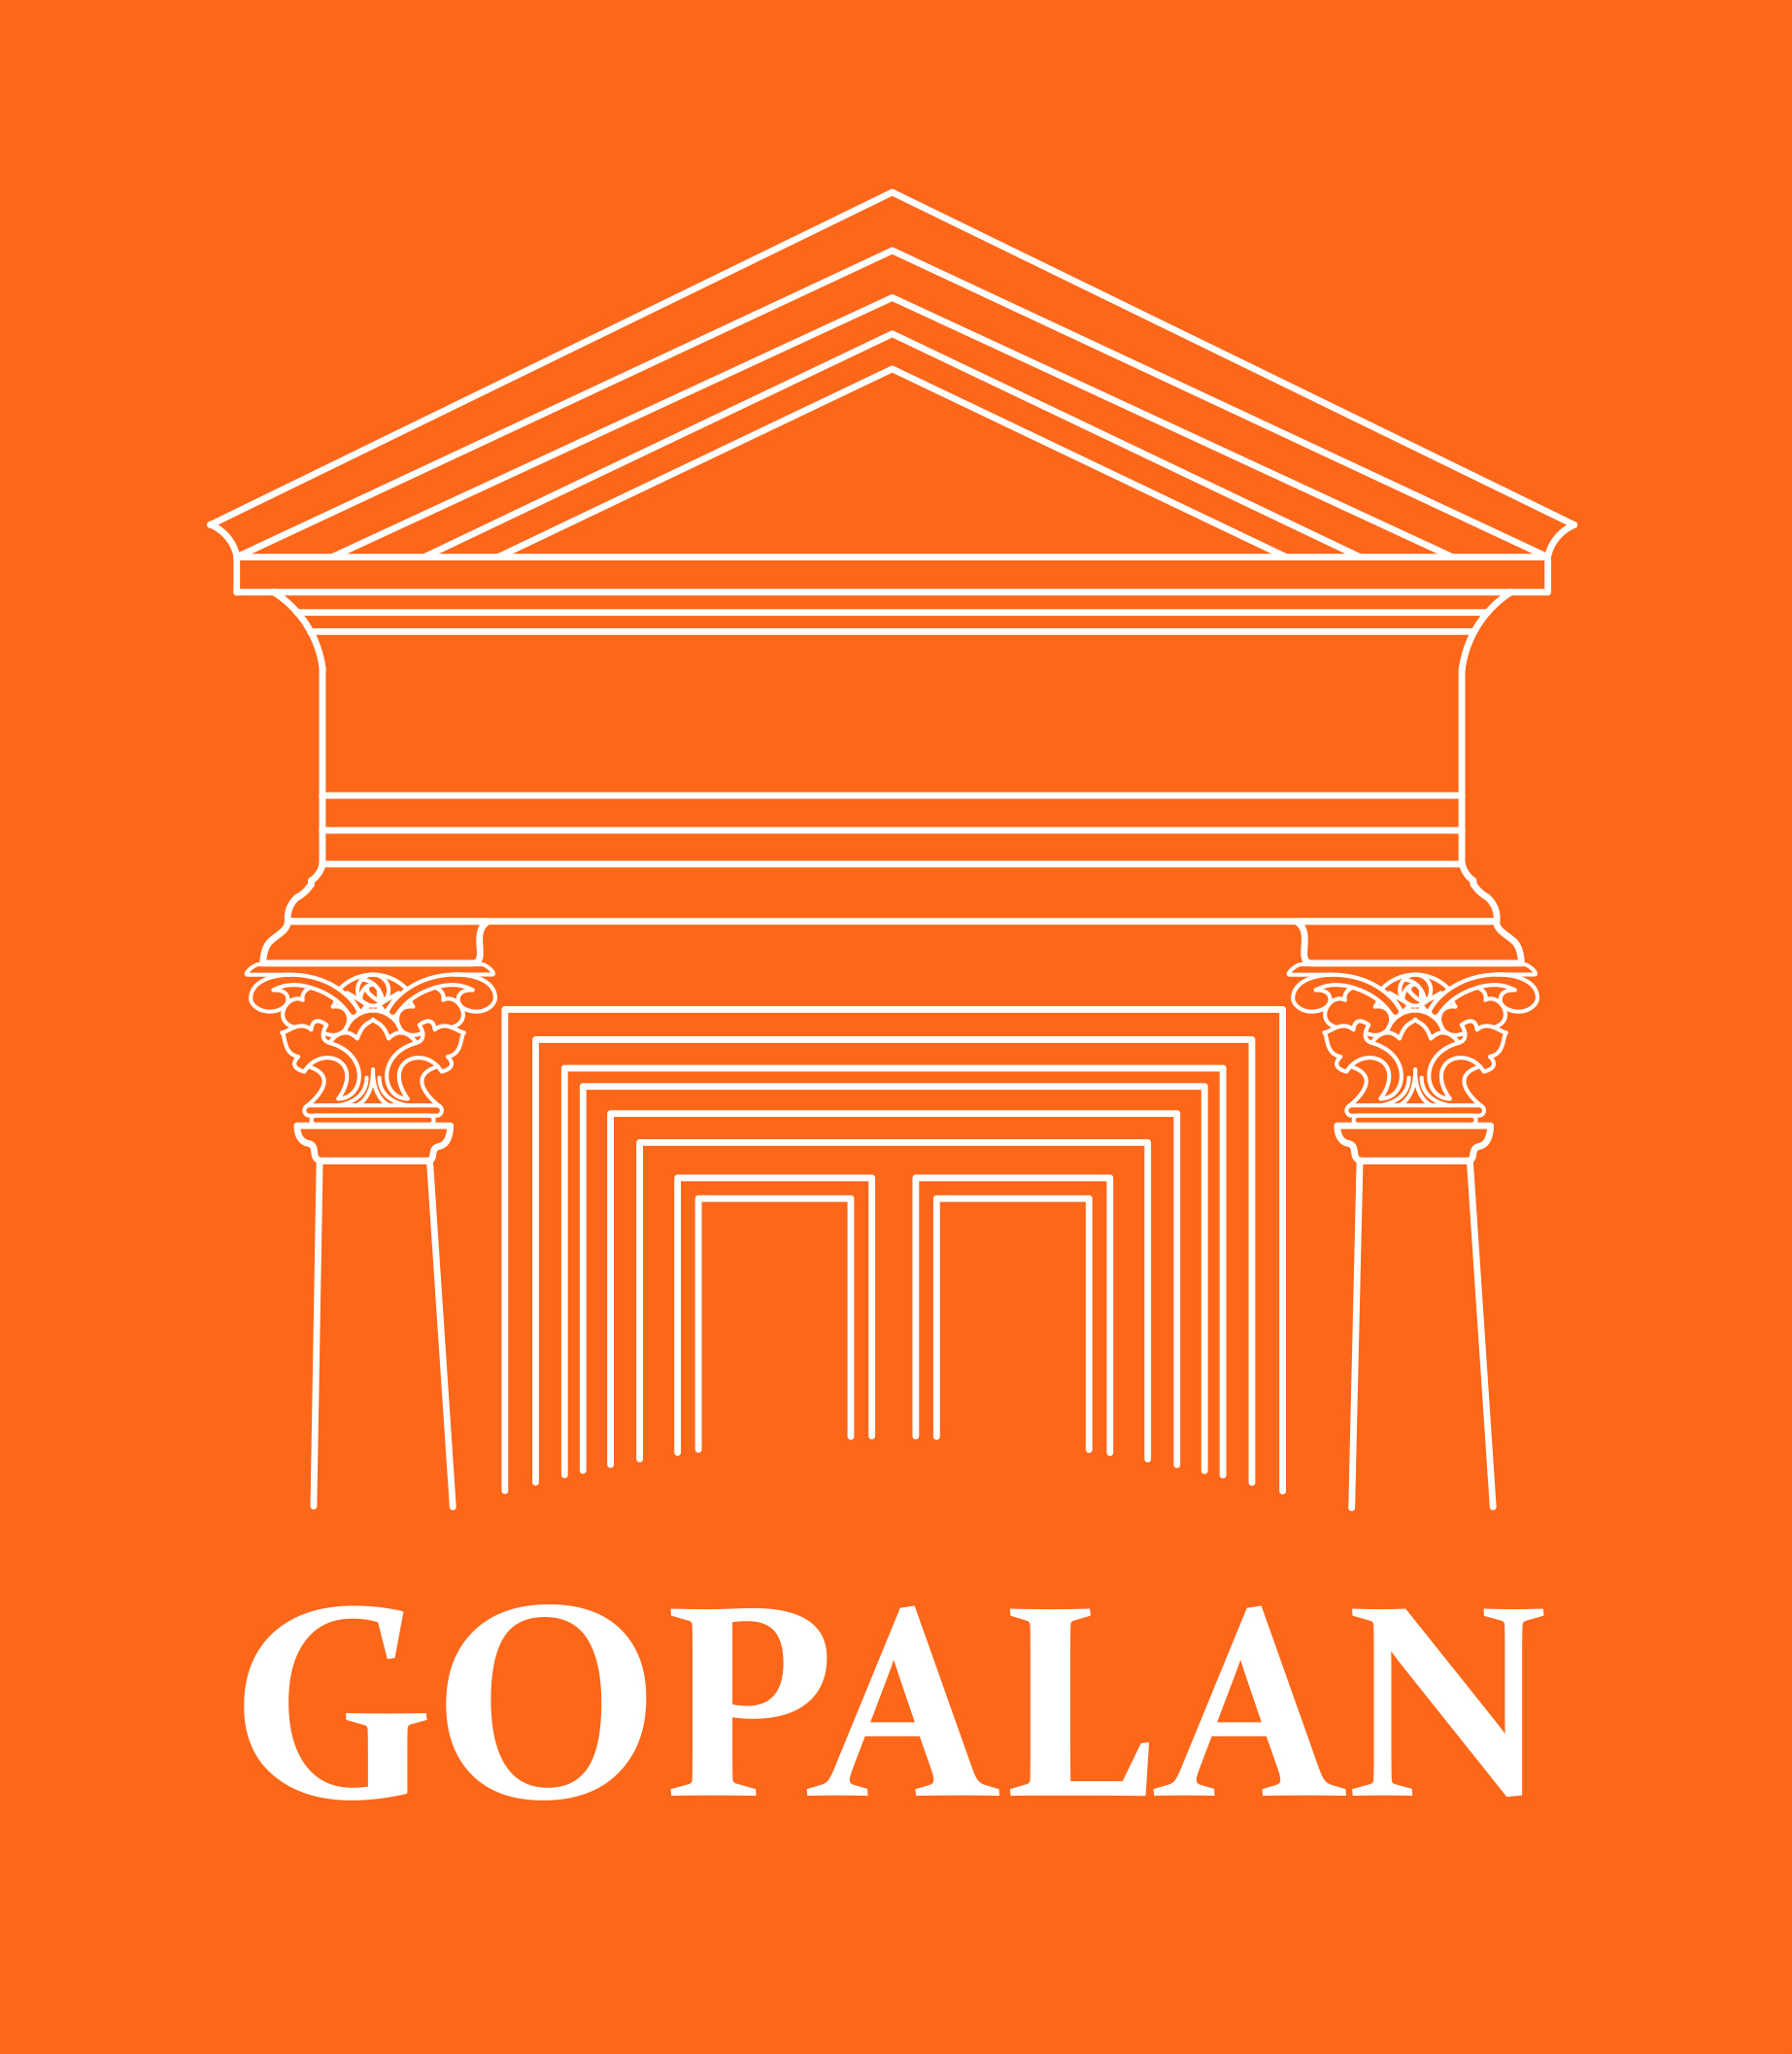 44gopalan enterprises logo copy.jpg